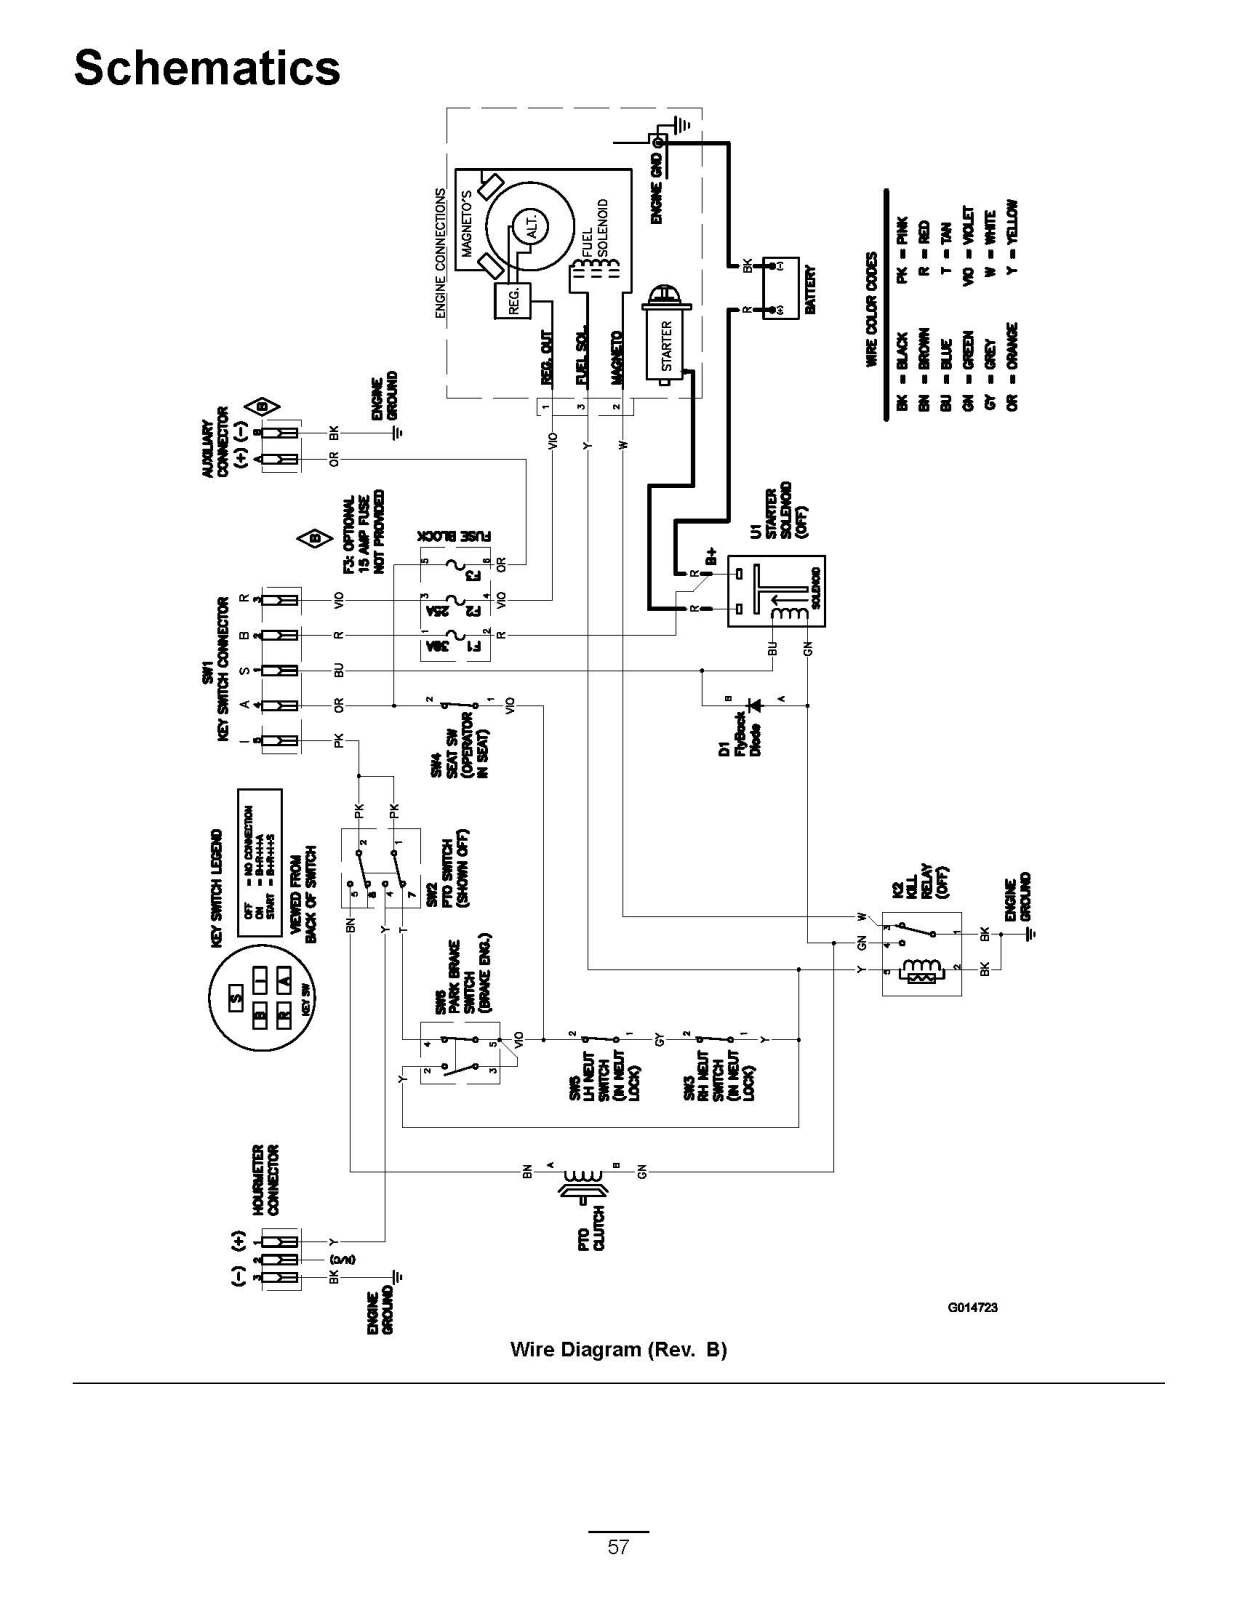 toro workman wiring diagram po davidforlife de \u2022 Toro Workman Electric Wiring Diagram wiring diagram toro twister wiring diagram online rh 18 9 lightandzaun de toro workman 1100 wiring diagram toro workman 2100 wiring diagram